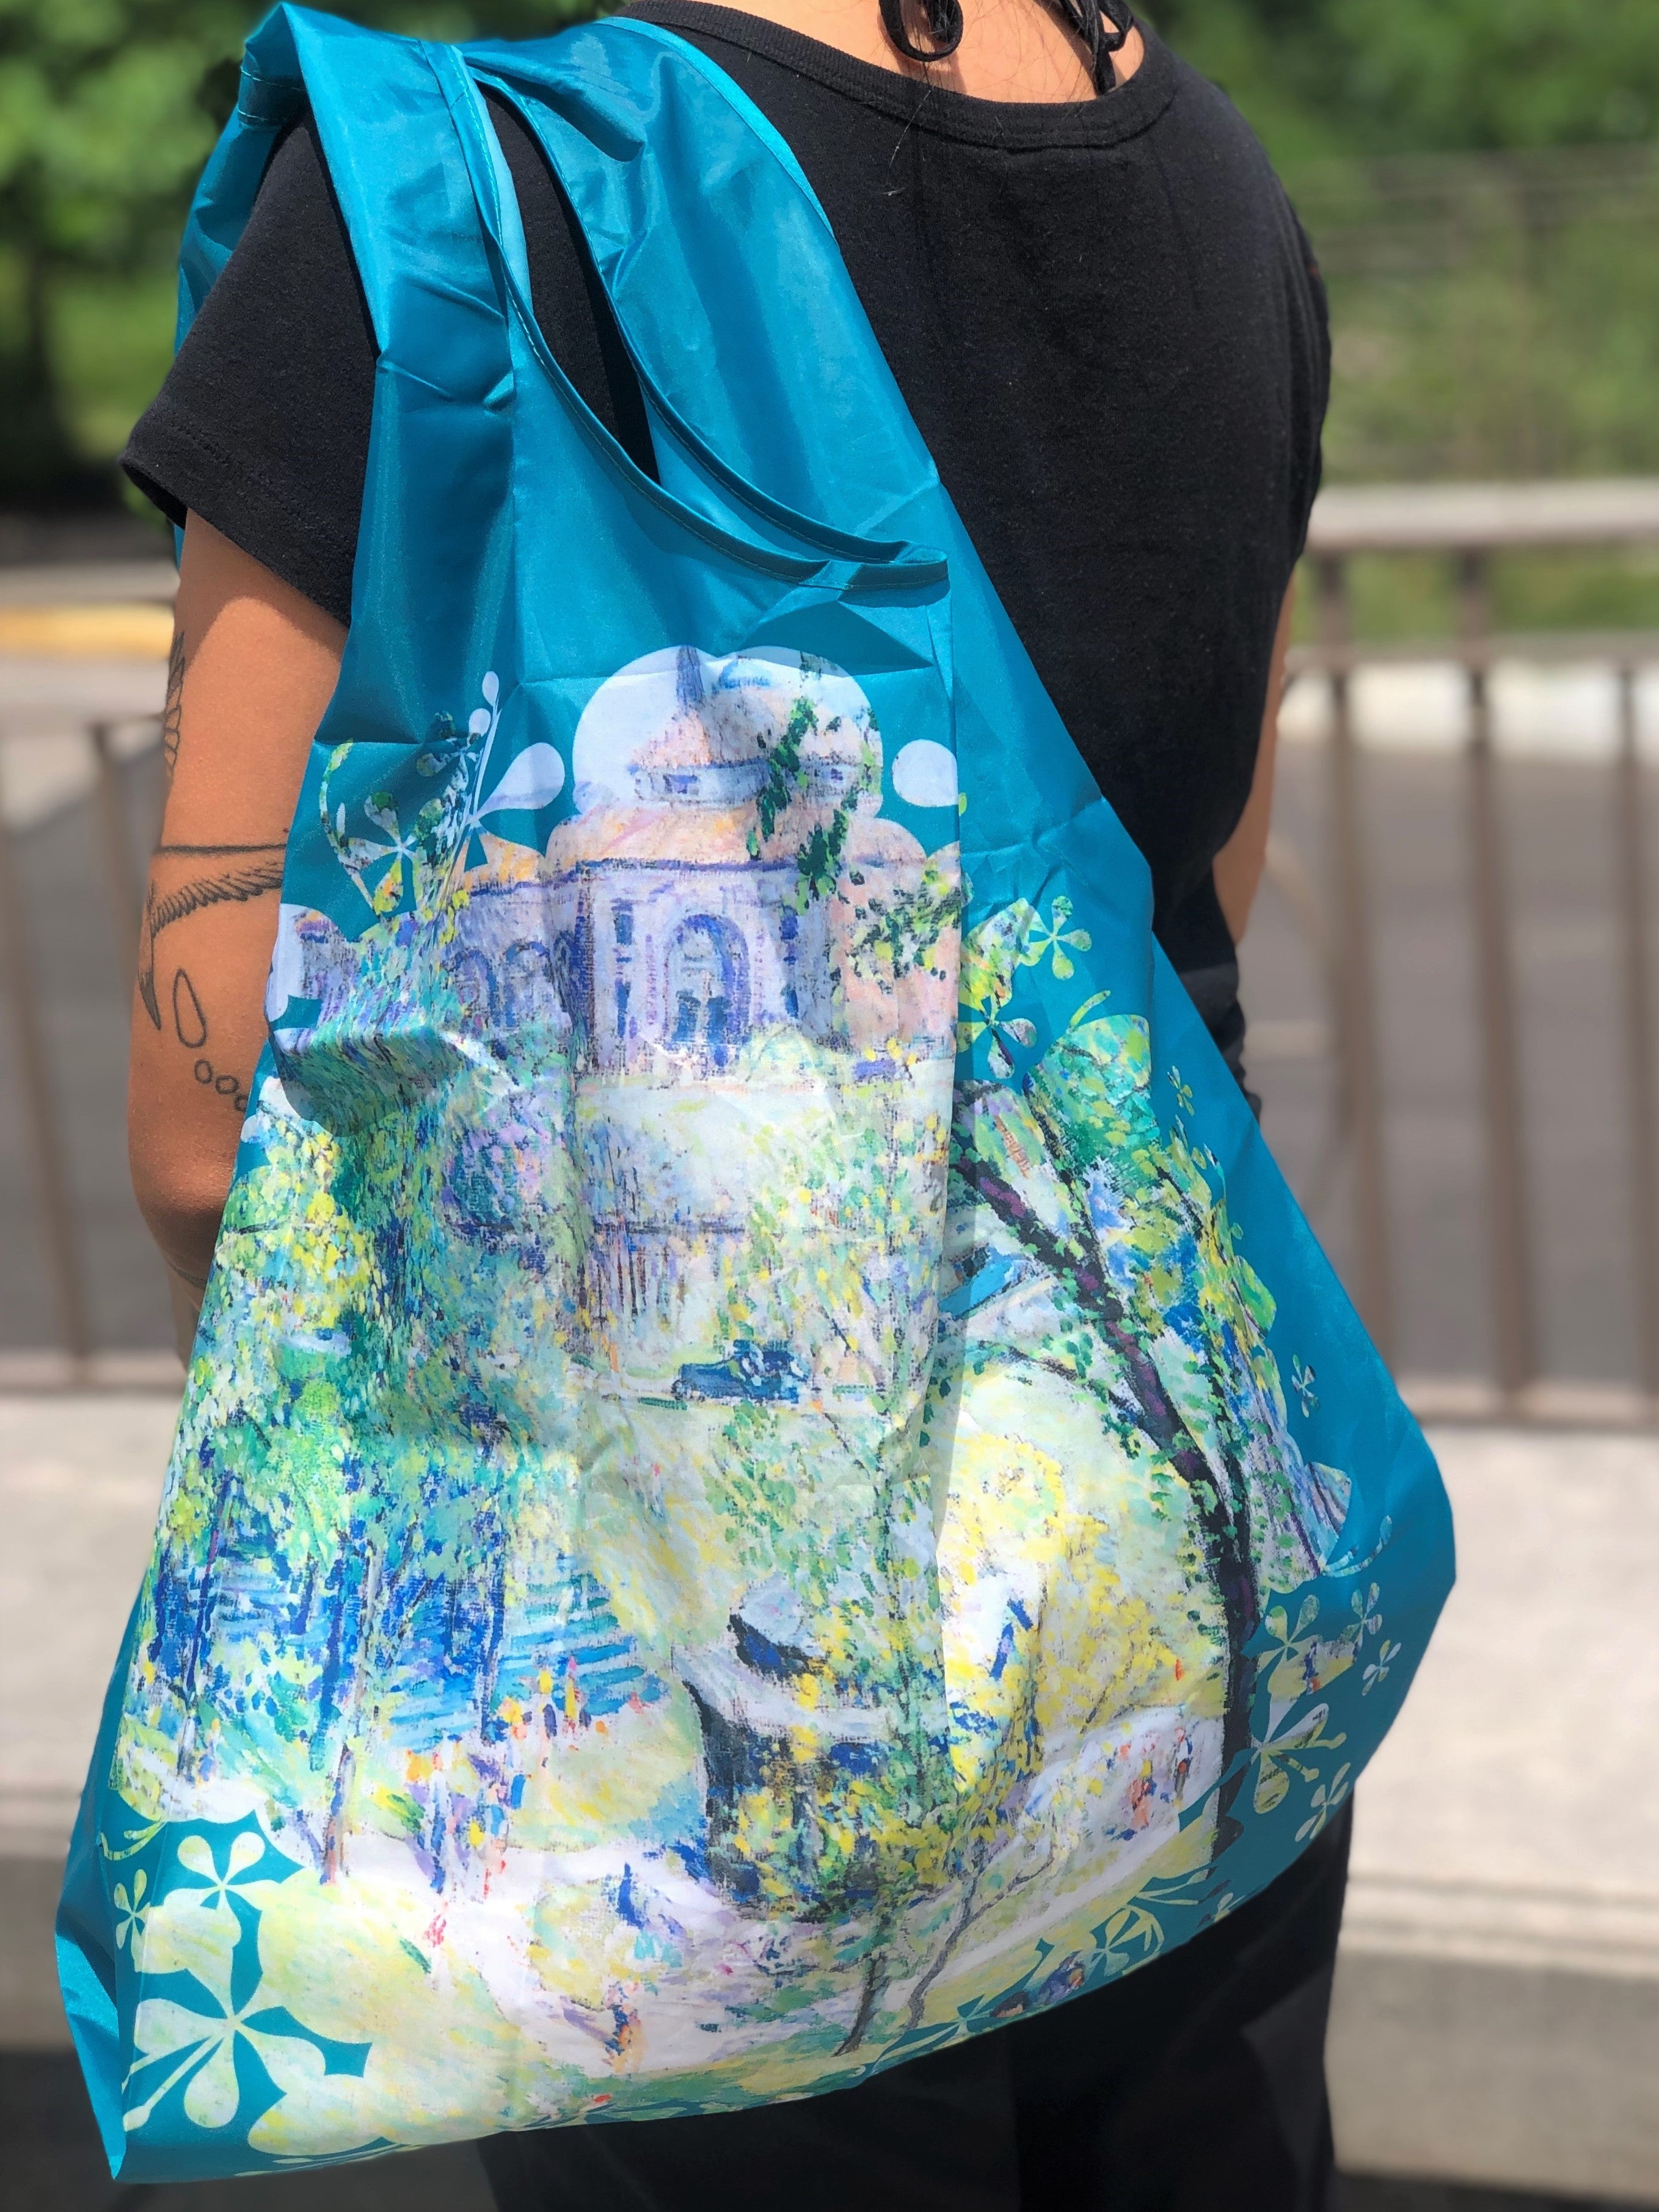 In The Park Reusable Tote Bag